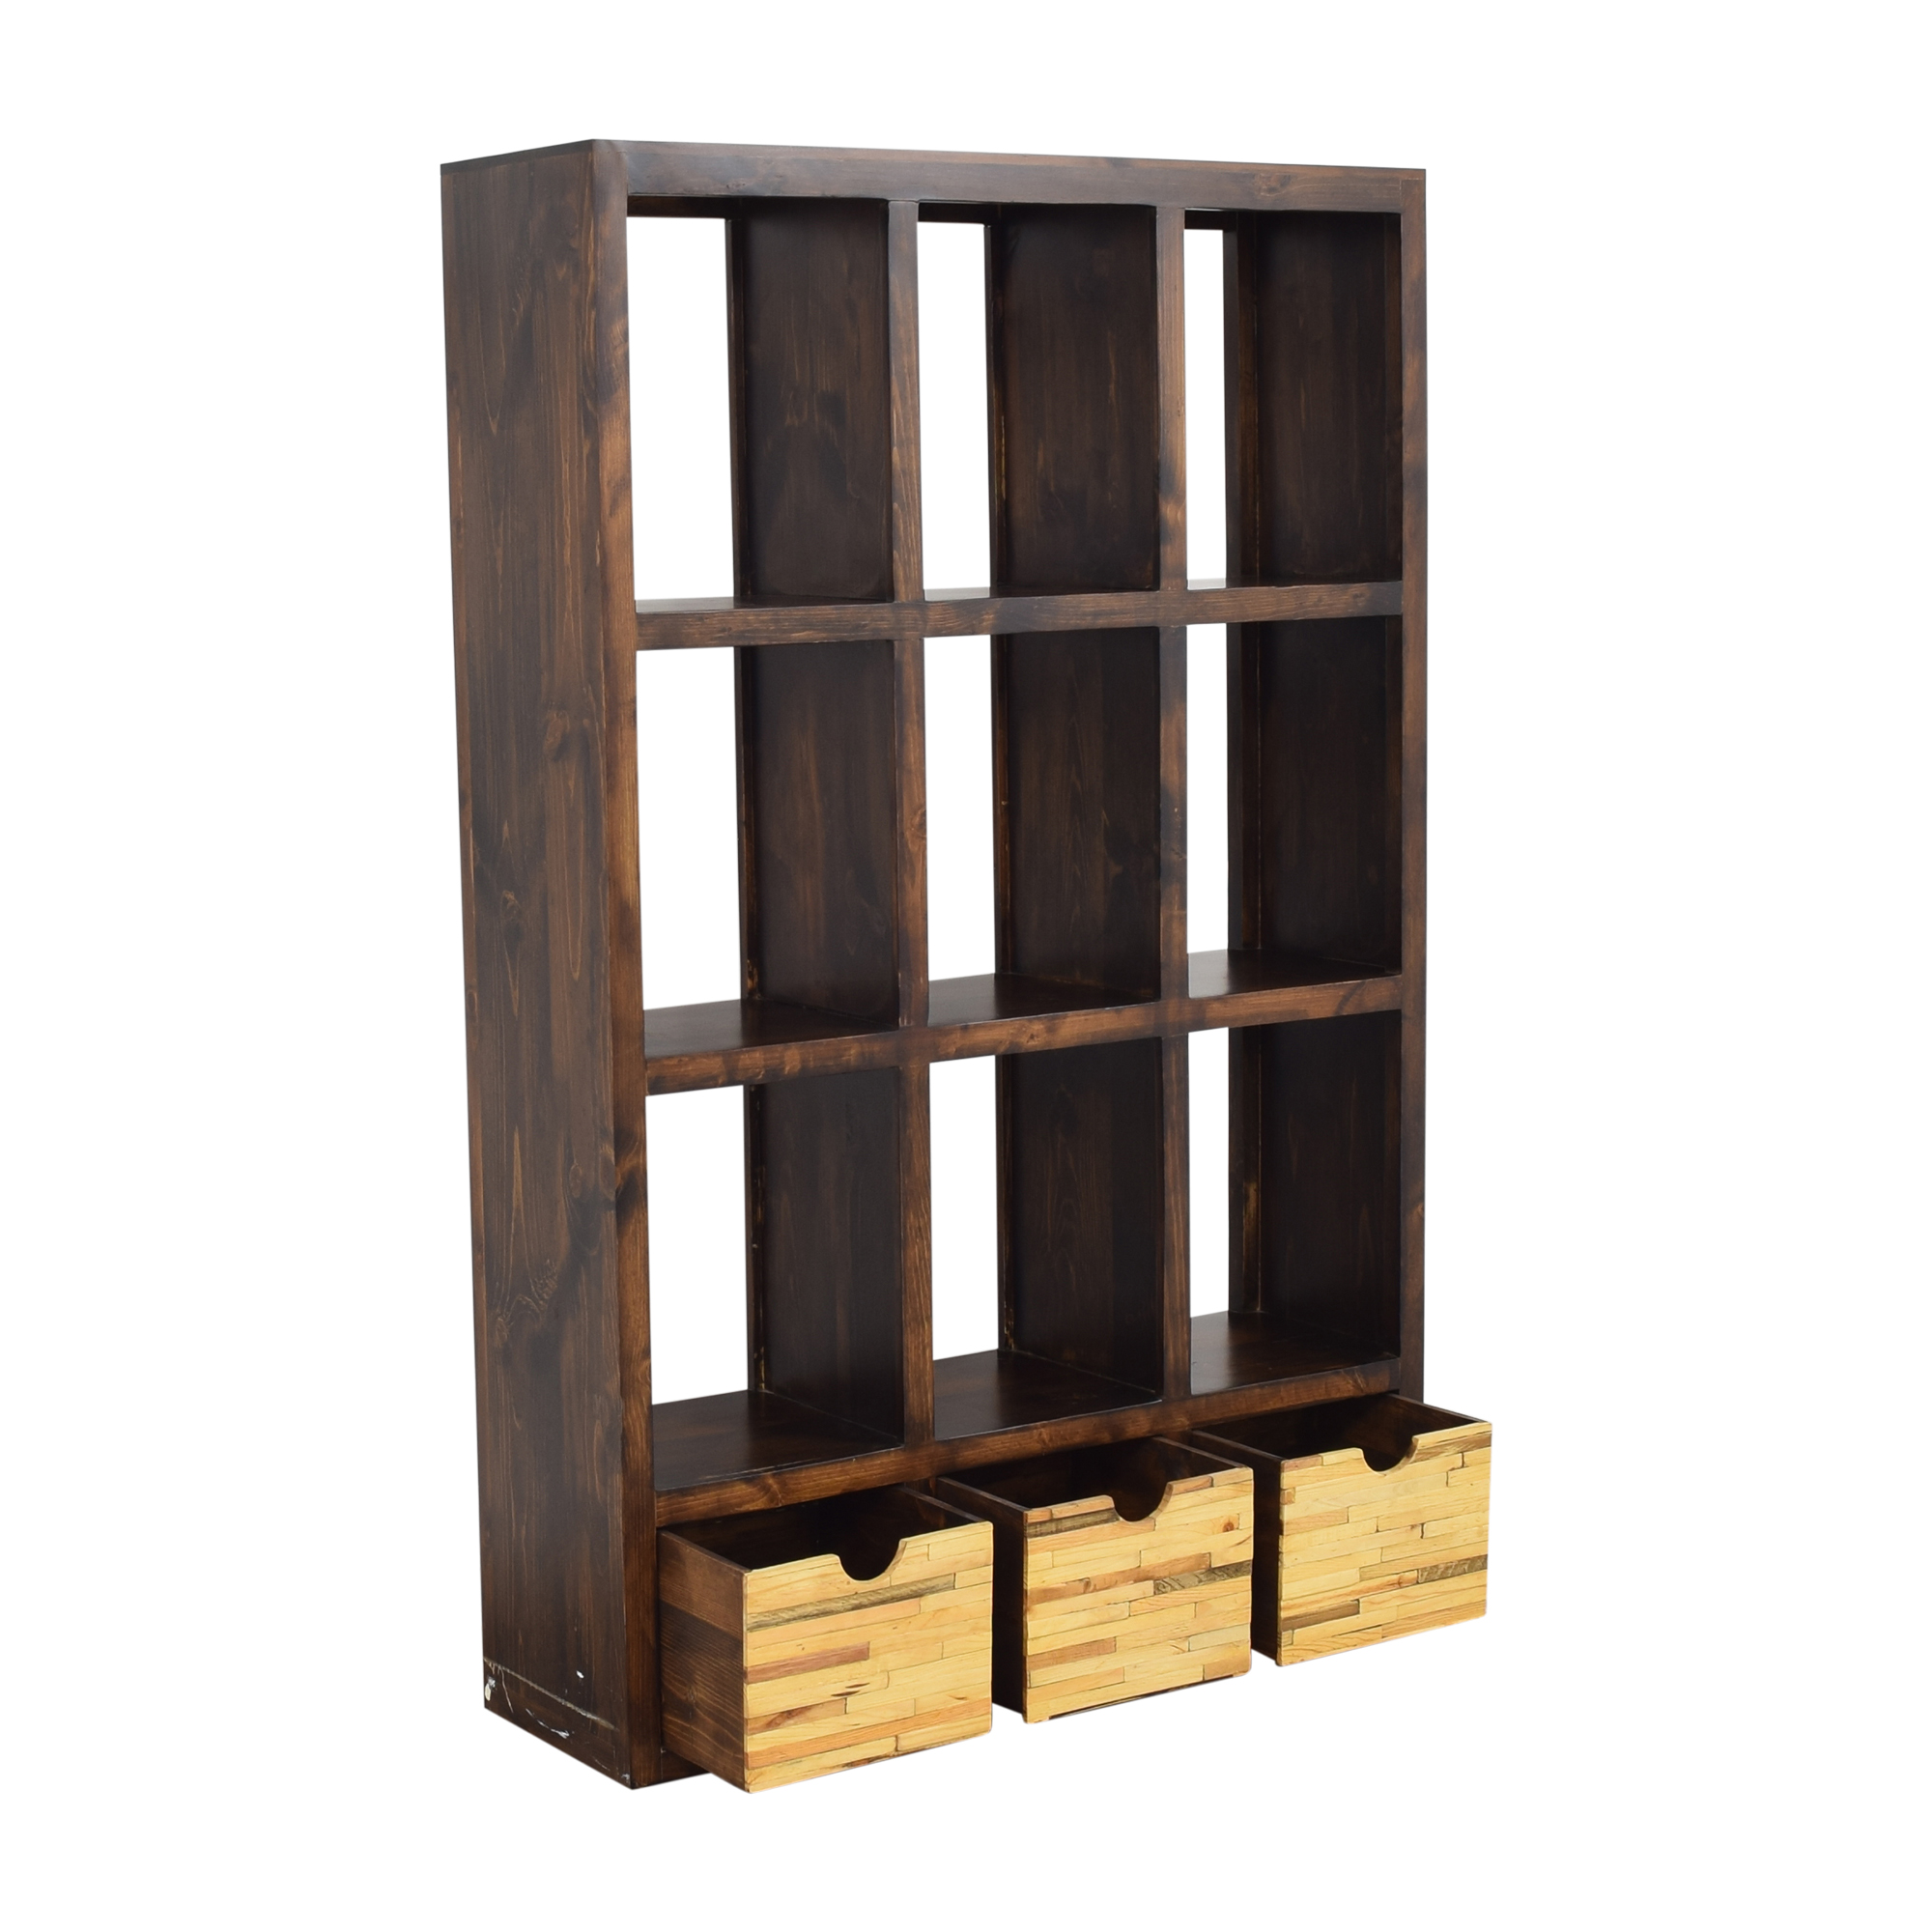 shop Display Bookshelf with Storage  Bookcases & Shelving